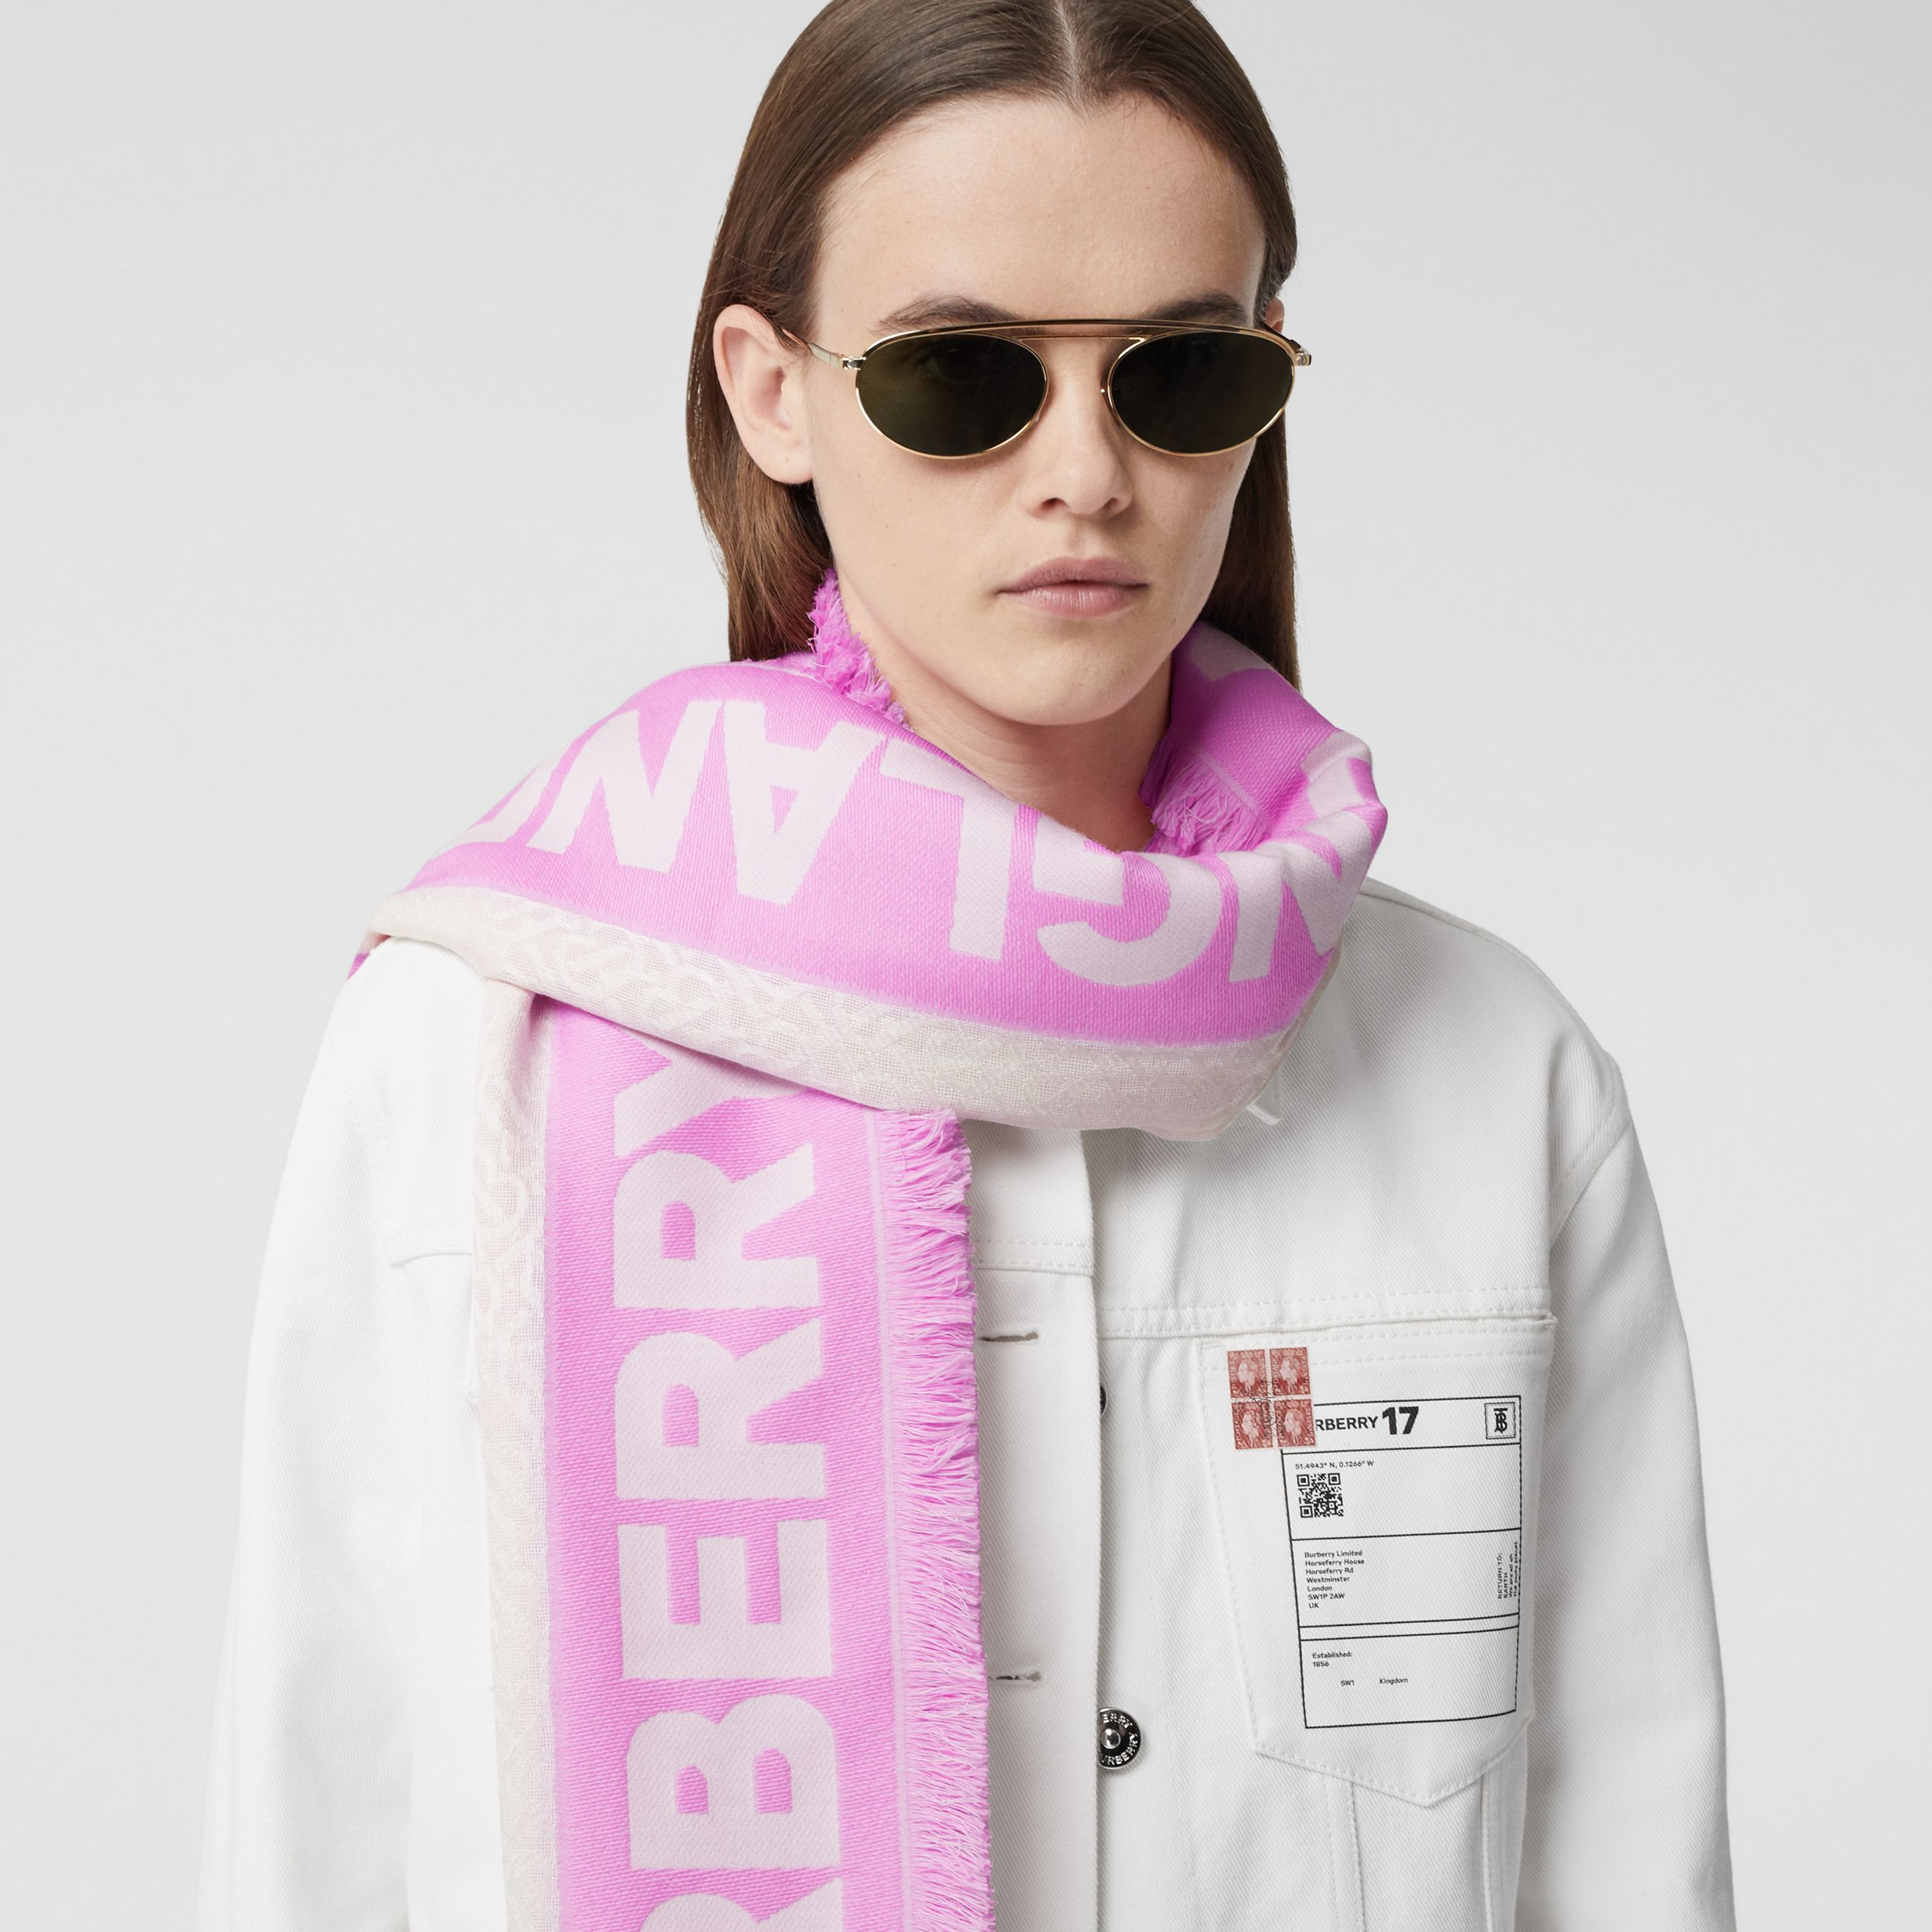 Monogram Fil Coupé Silk Blend Large Square Scarf in Pink | Burberry - 3